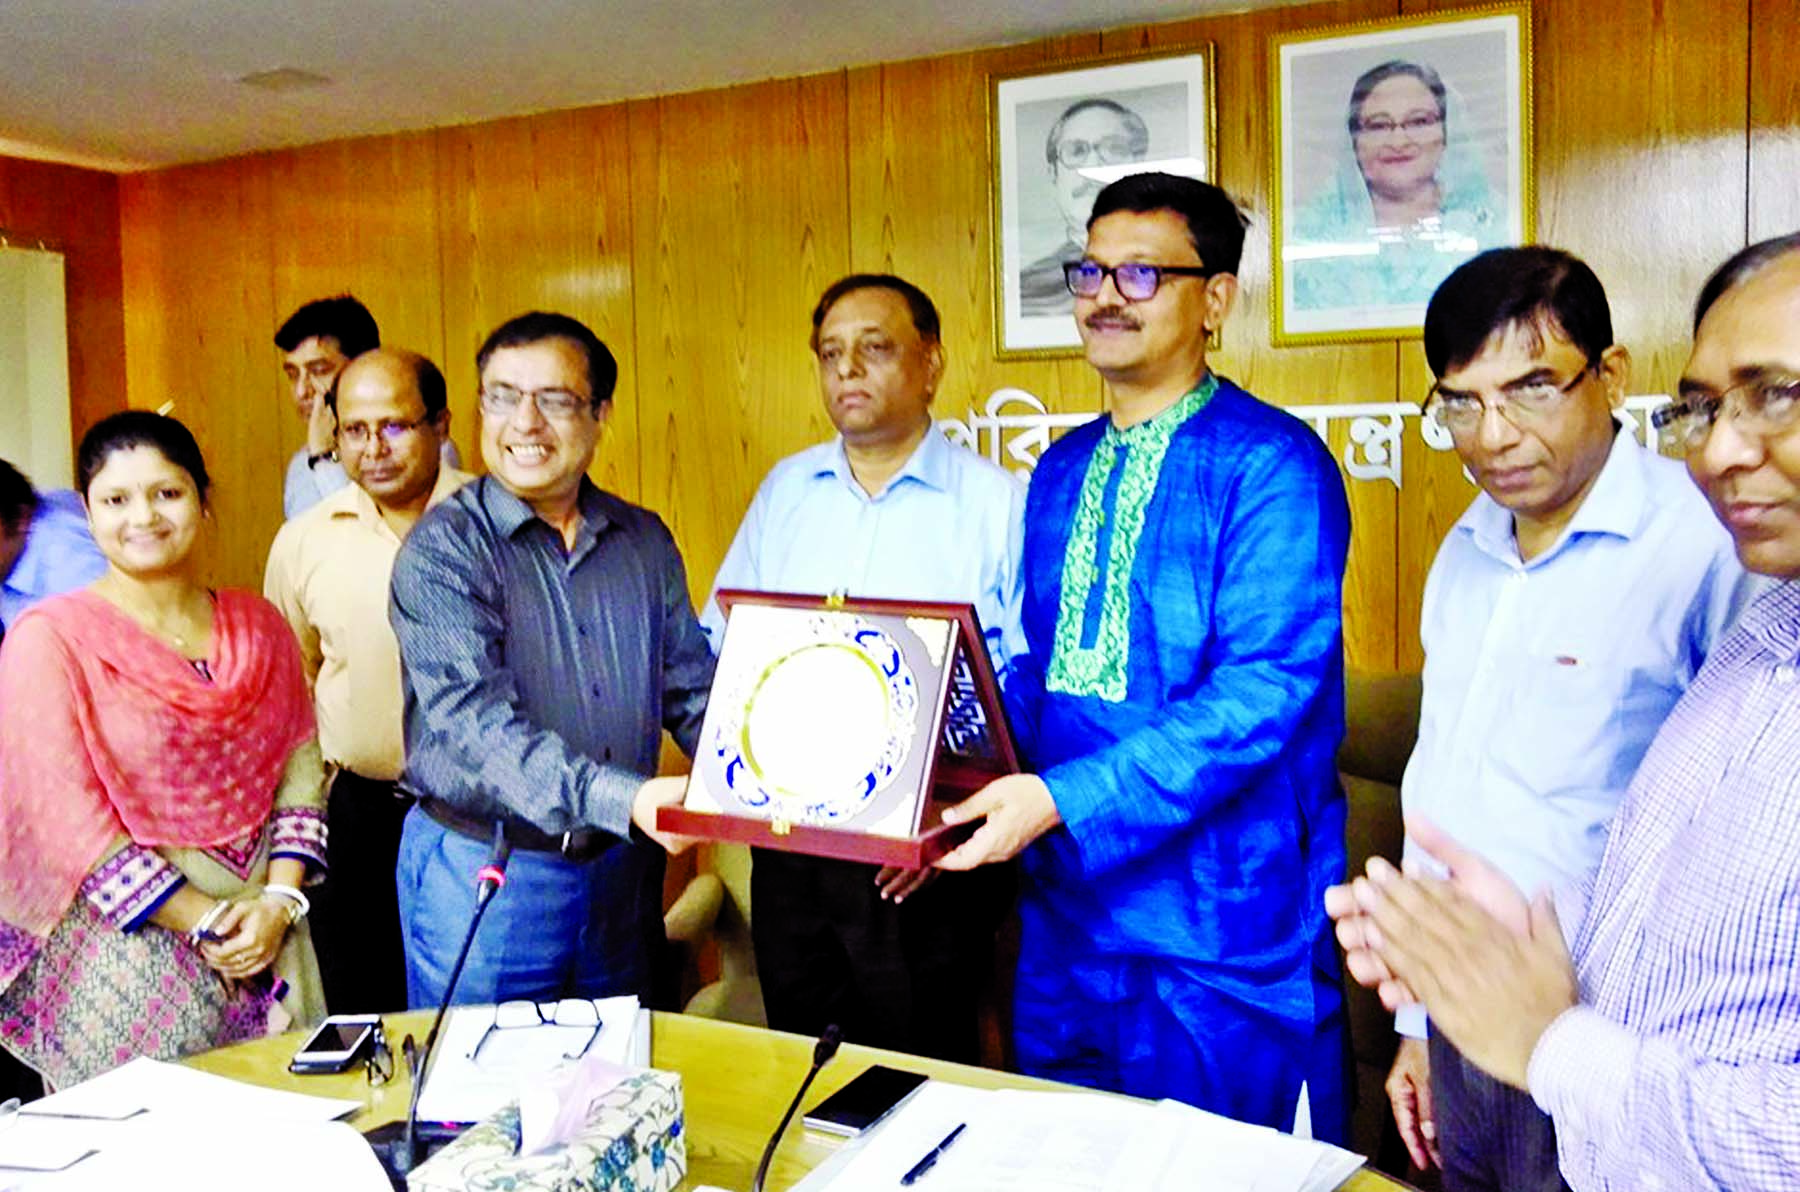 State Minister for Shipping Khalid Mahmud Chowdhury presenting crests to two best project directors of the ministry and agency for 2018-'19 fiscal year at the seminar room of the ministry on Tuesday.